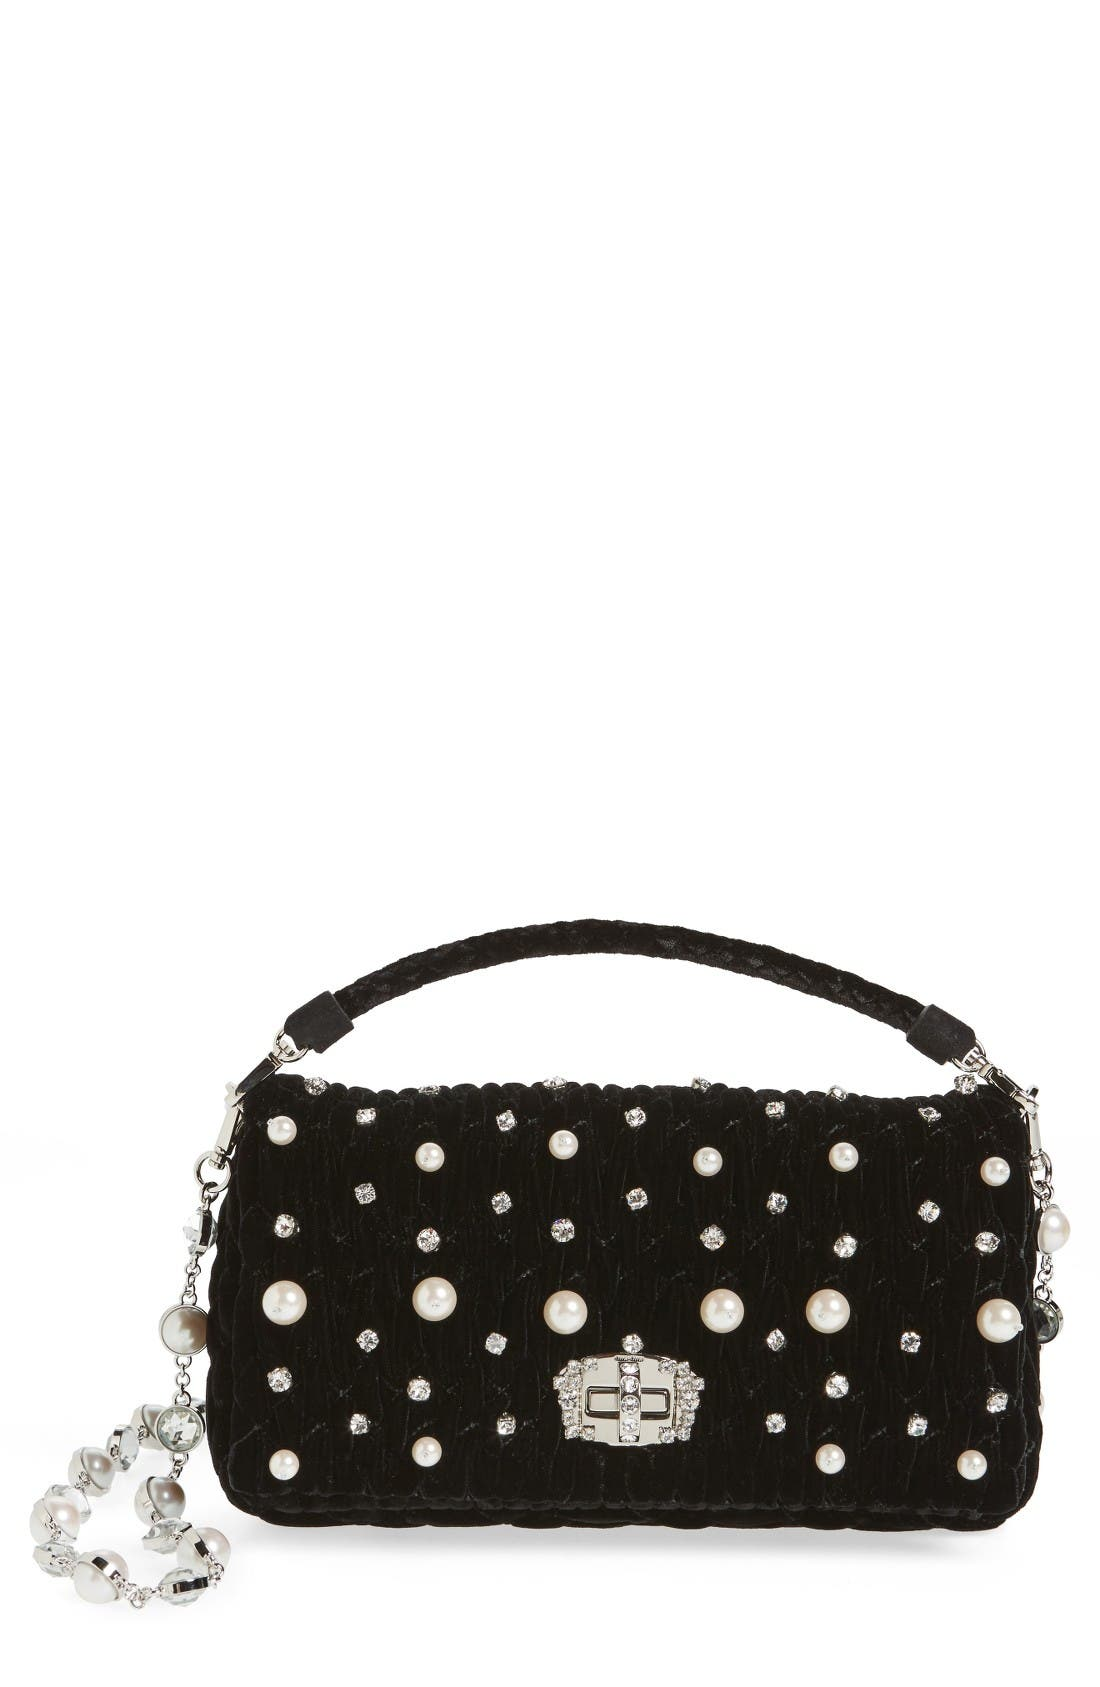 Alternate Image 1 Selected - Miu Miu Velluto Crystal Embellished Crossbody Clutch